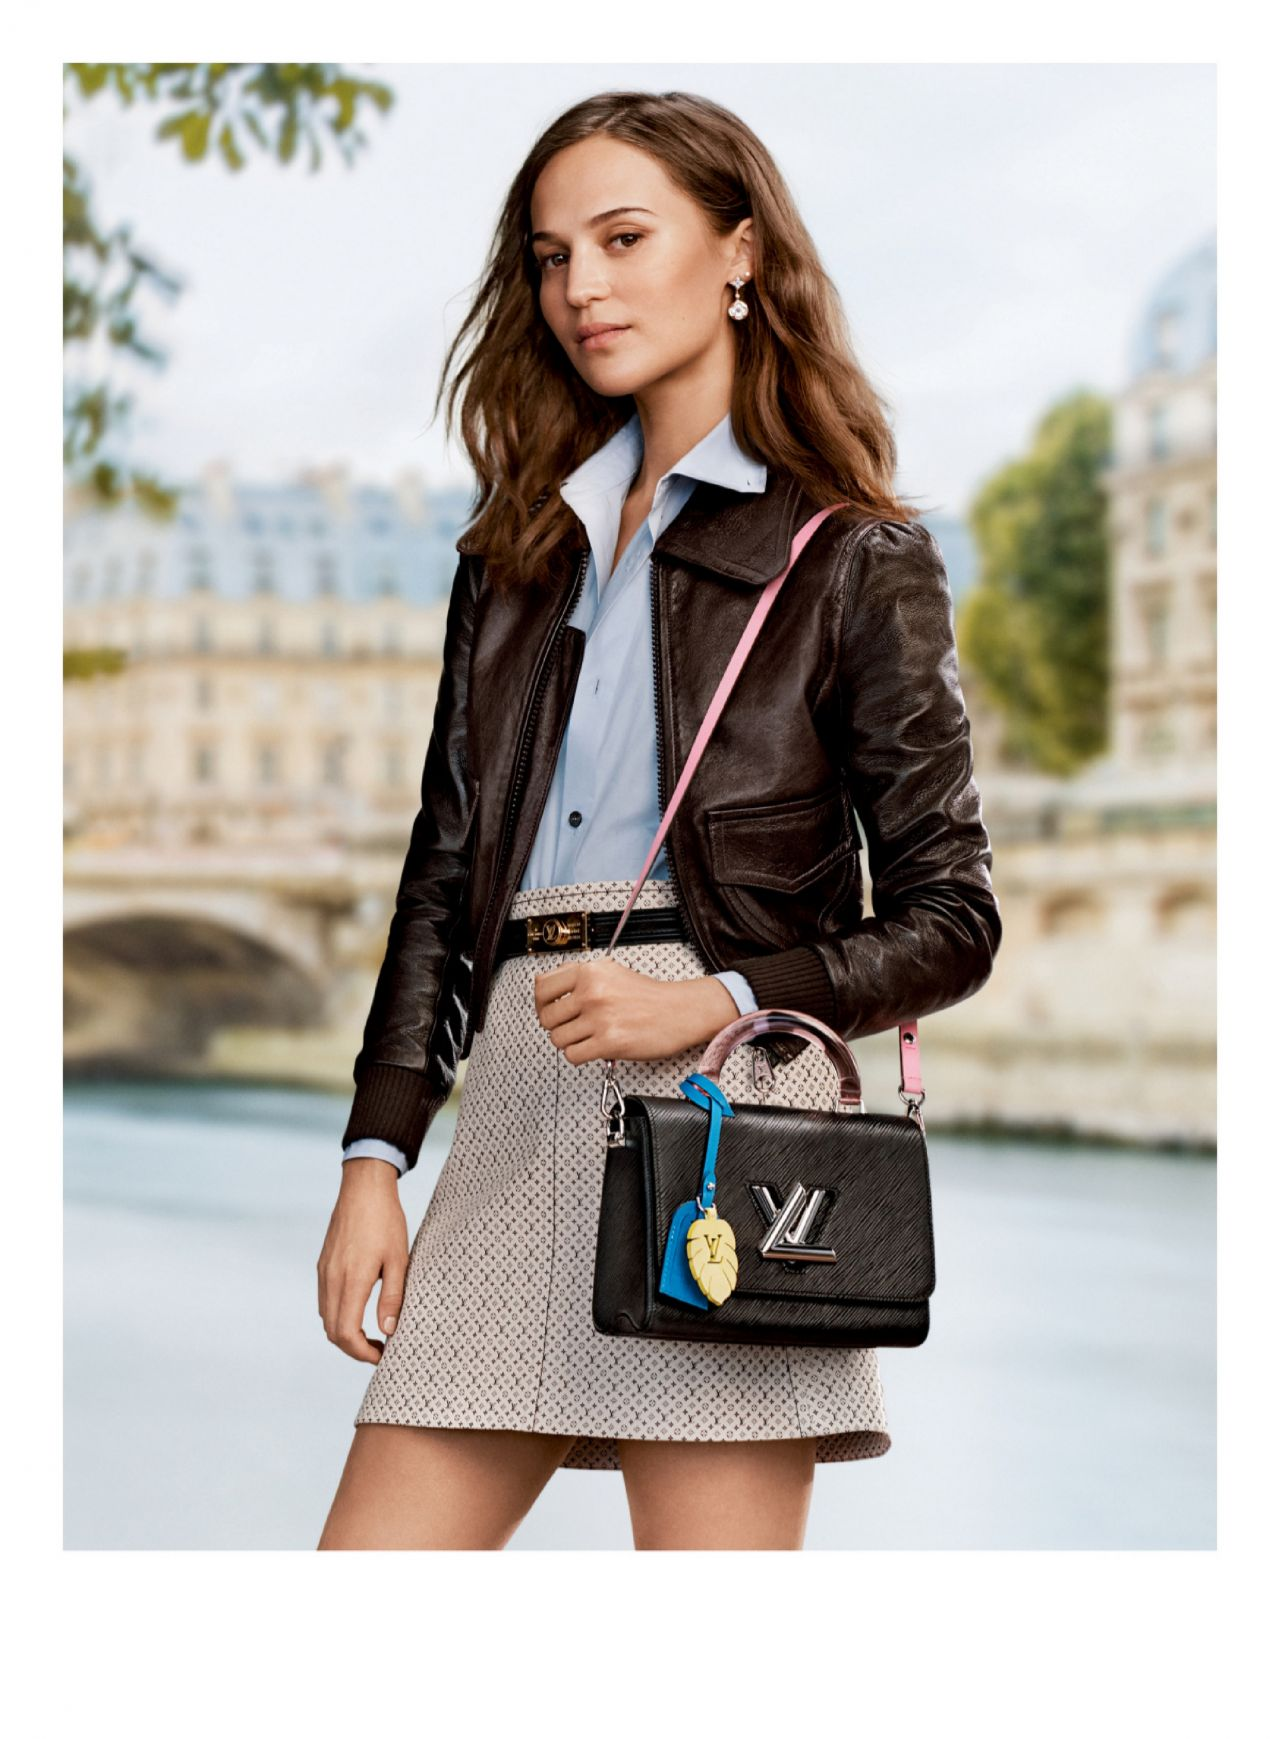 alicia-vikander-for-louis-vuitton-pre-fall-2020-campaign